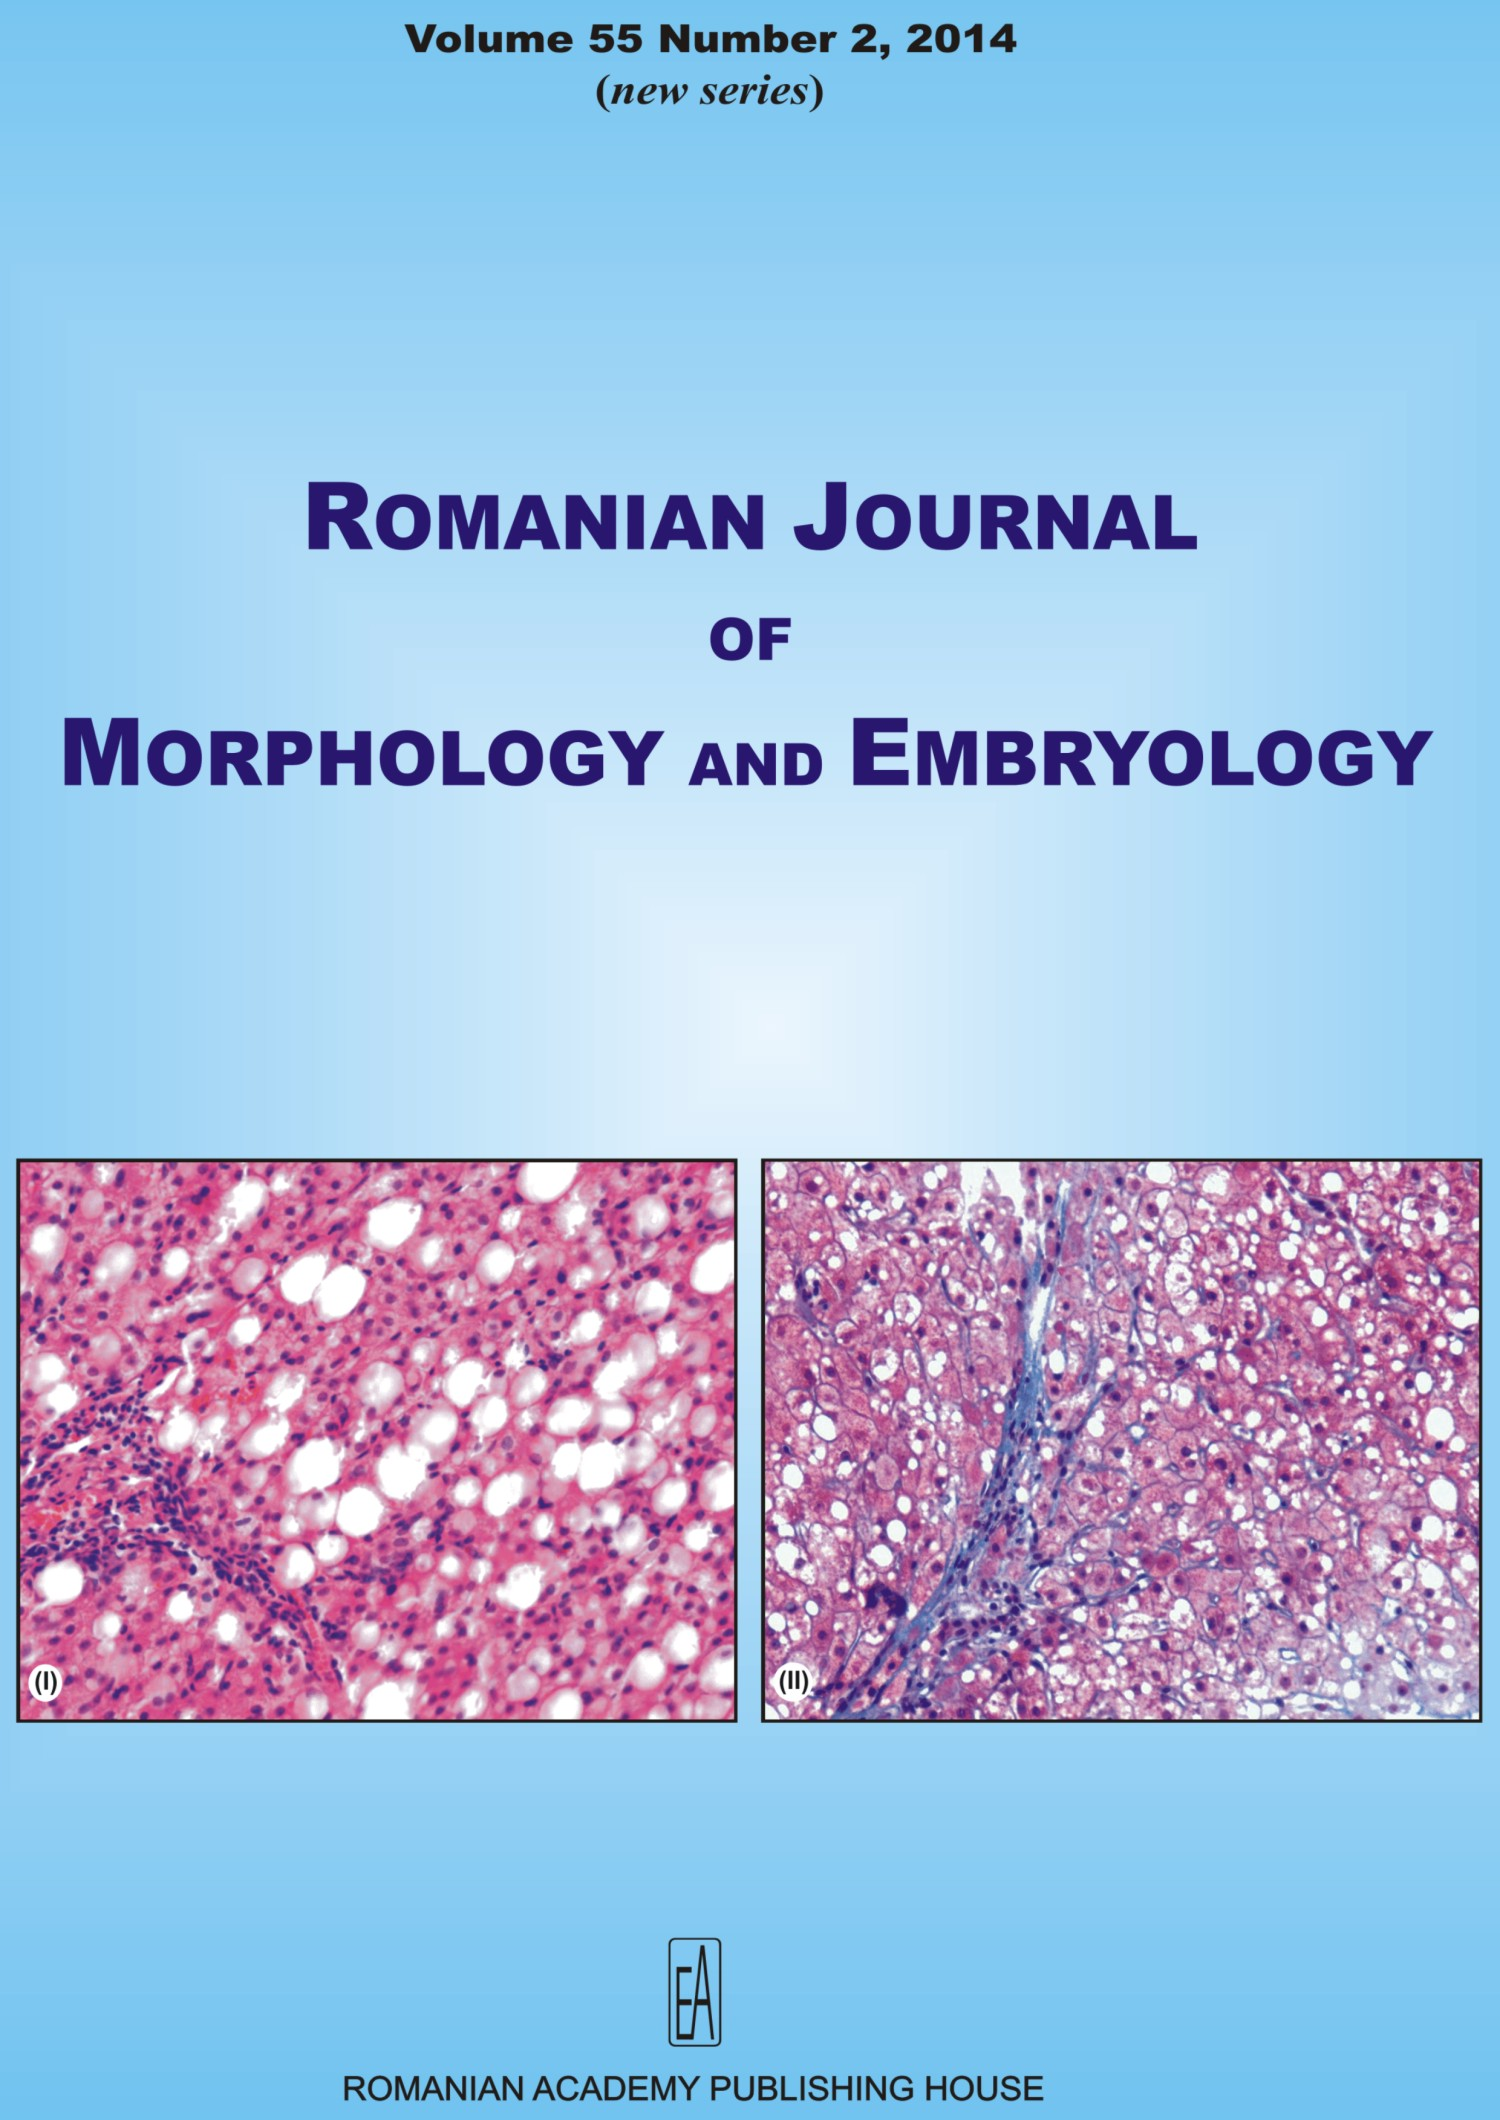 Romanian Journal of Morphology and Embryology, vol. 55 no. 2, 2014